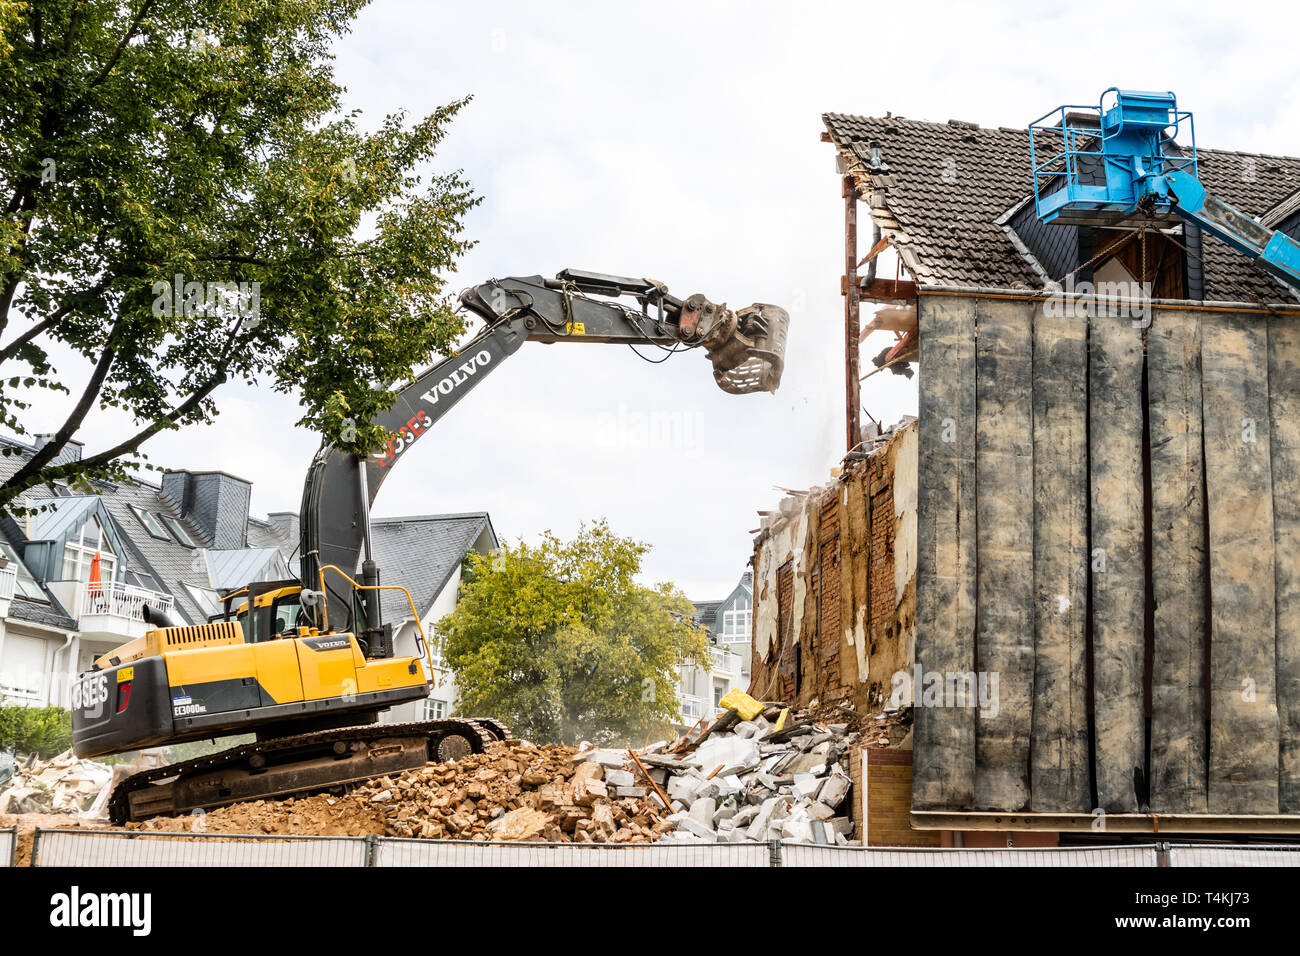 Excavator working at the demolition of a house, construction site - 15th of August 2018, Idstein (Taunus), Hessia, Germany, Europe - Stock Image